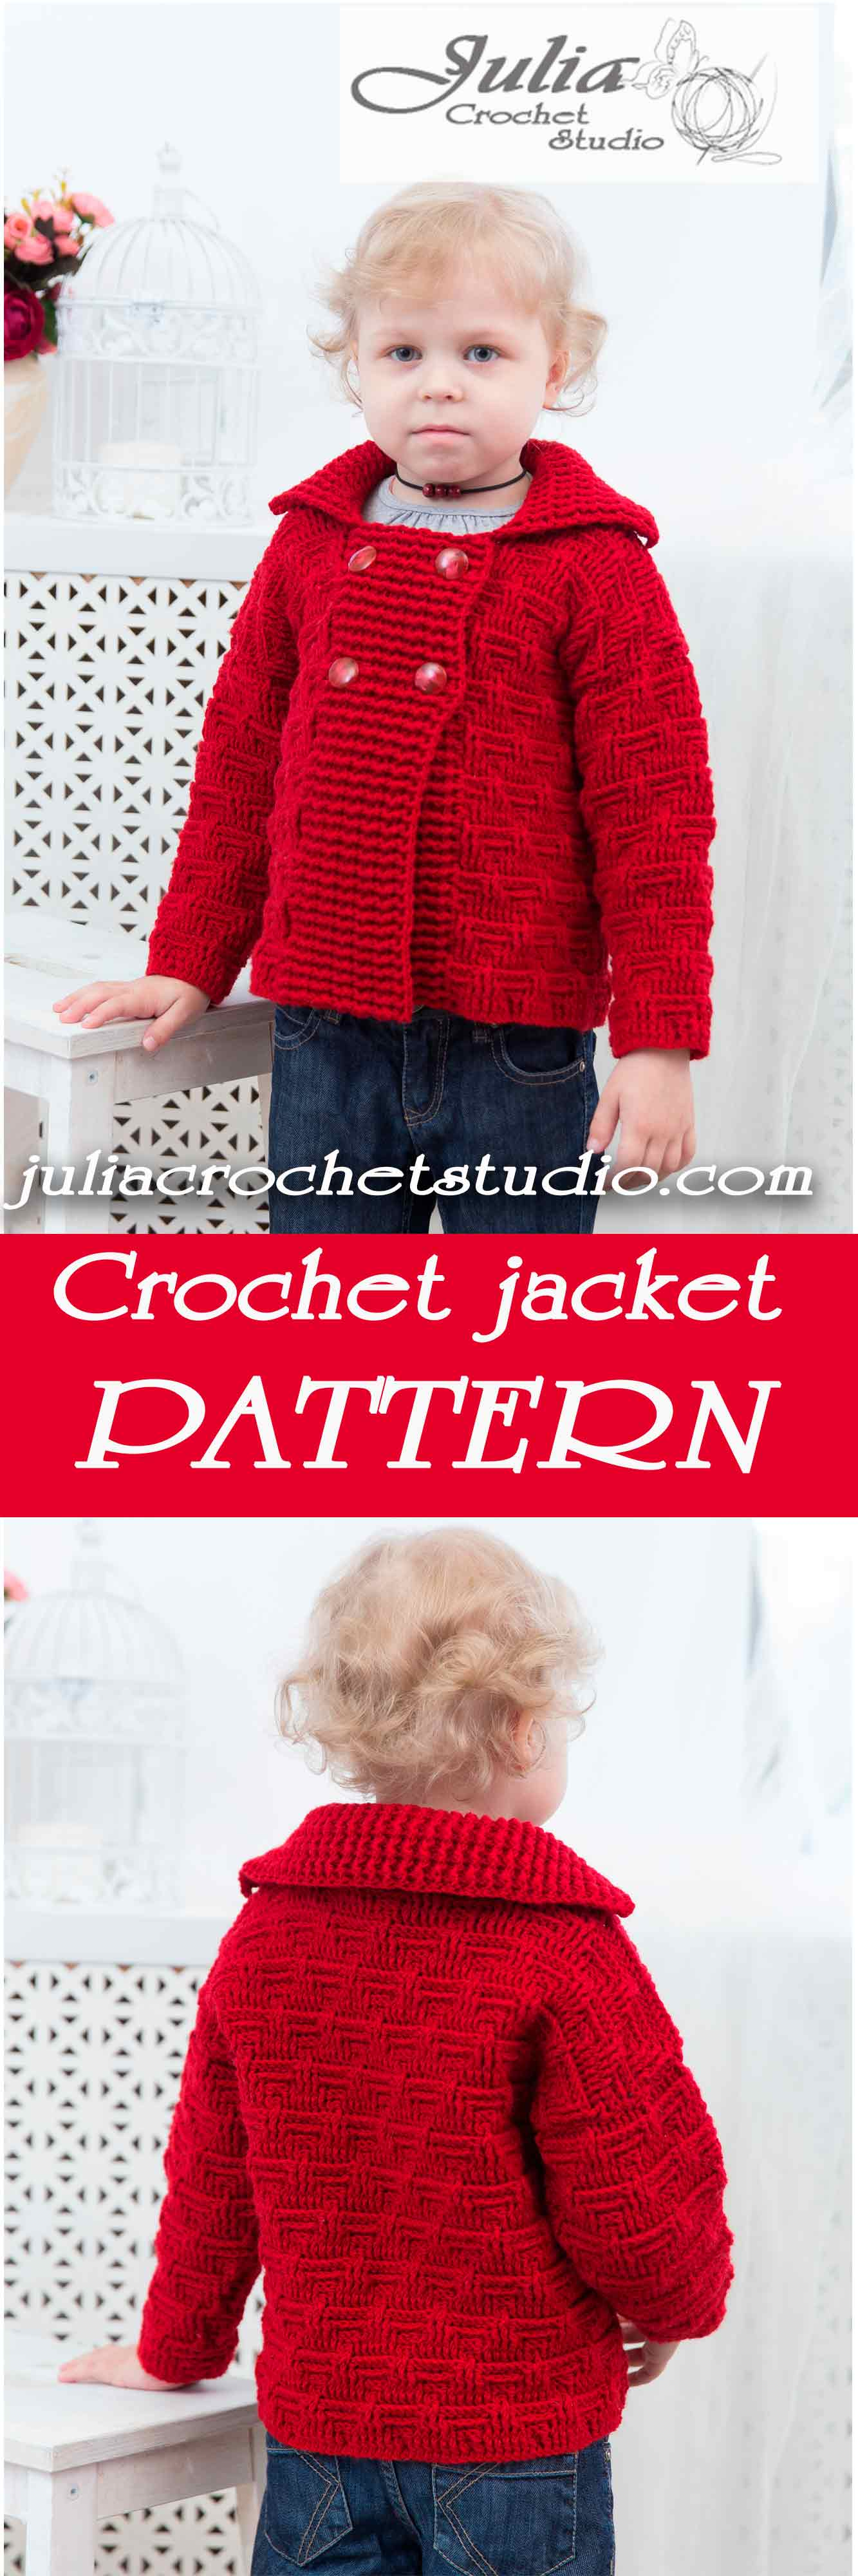 Warm crochet jacket pattern for girl